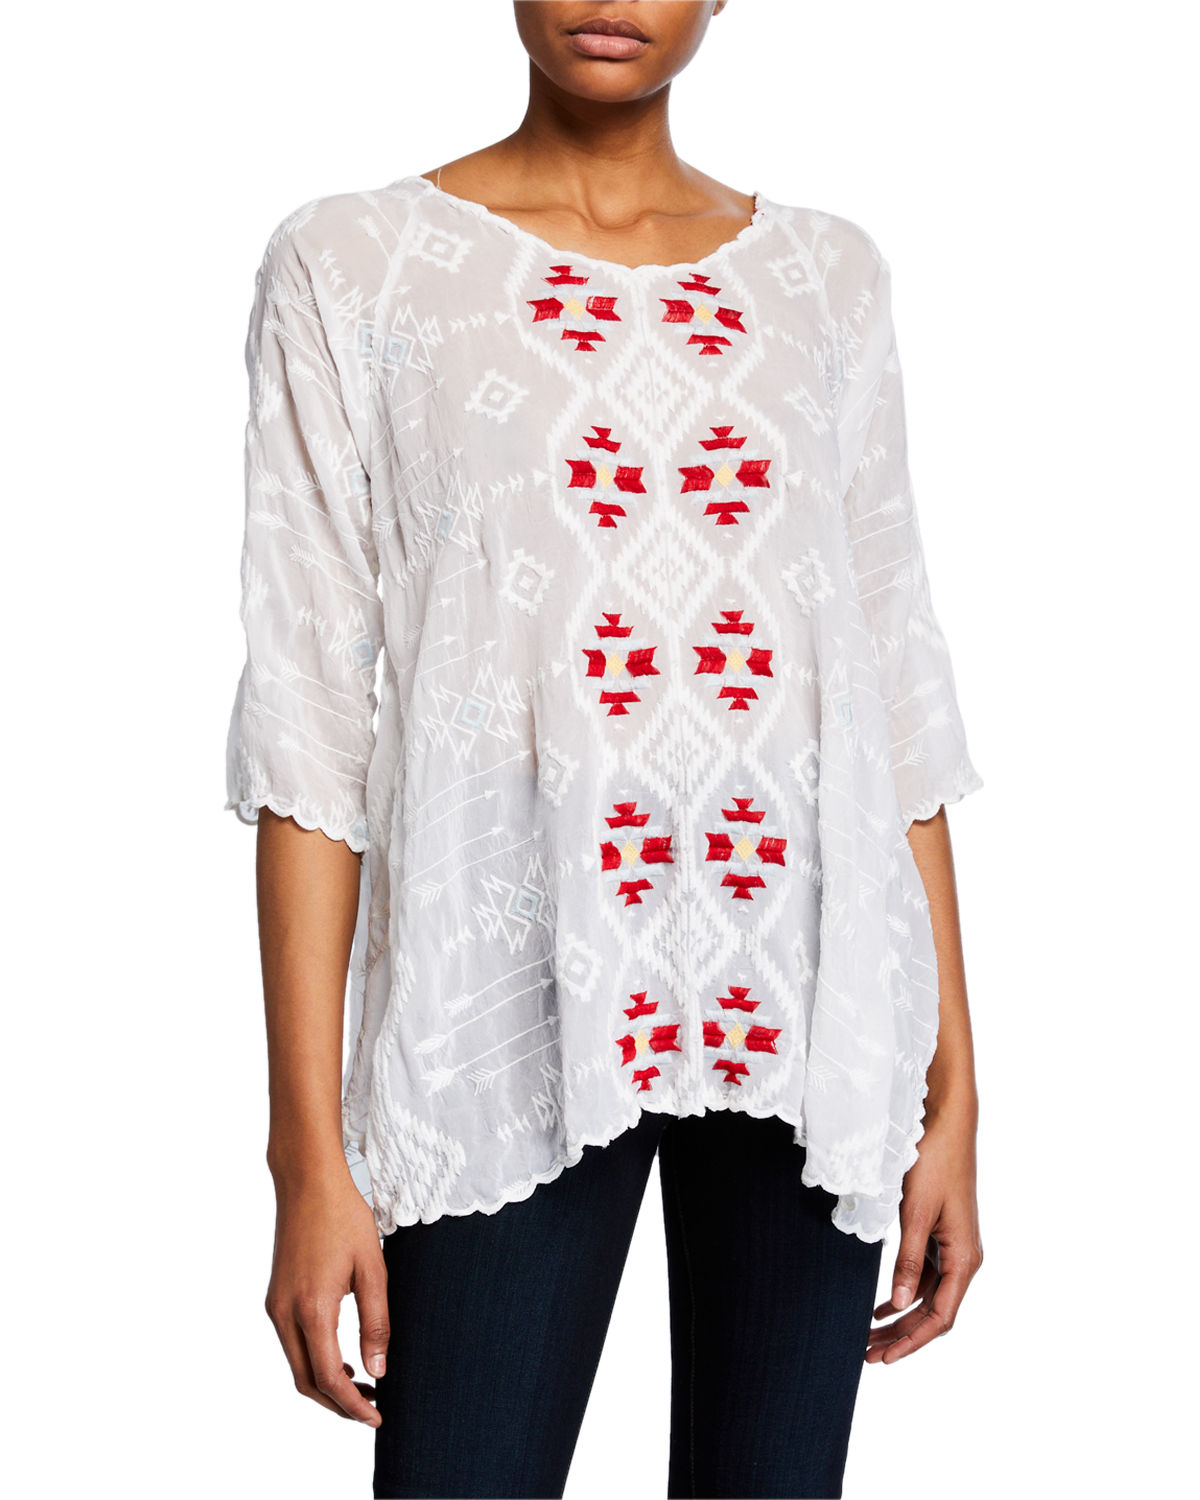 Johnny Was Tops PLUS SIZE ASHER 3/4-SLEEVE EMBROIDERED TUNIC